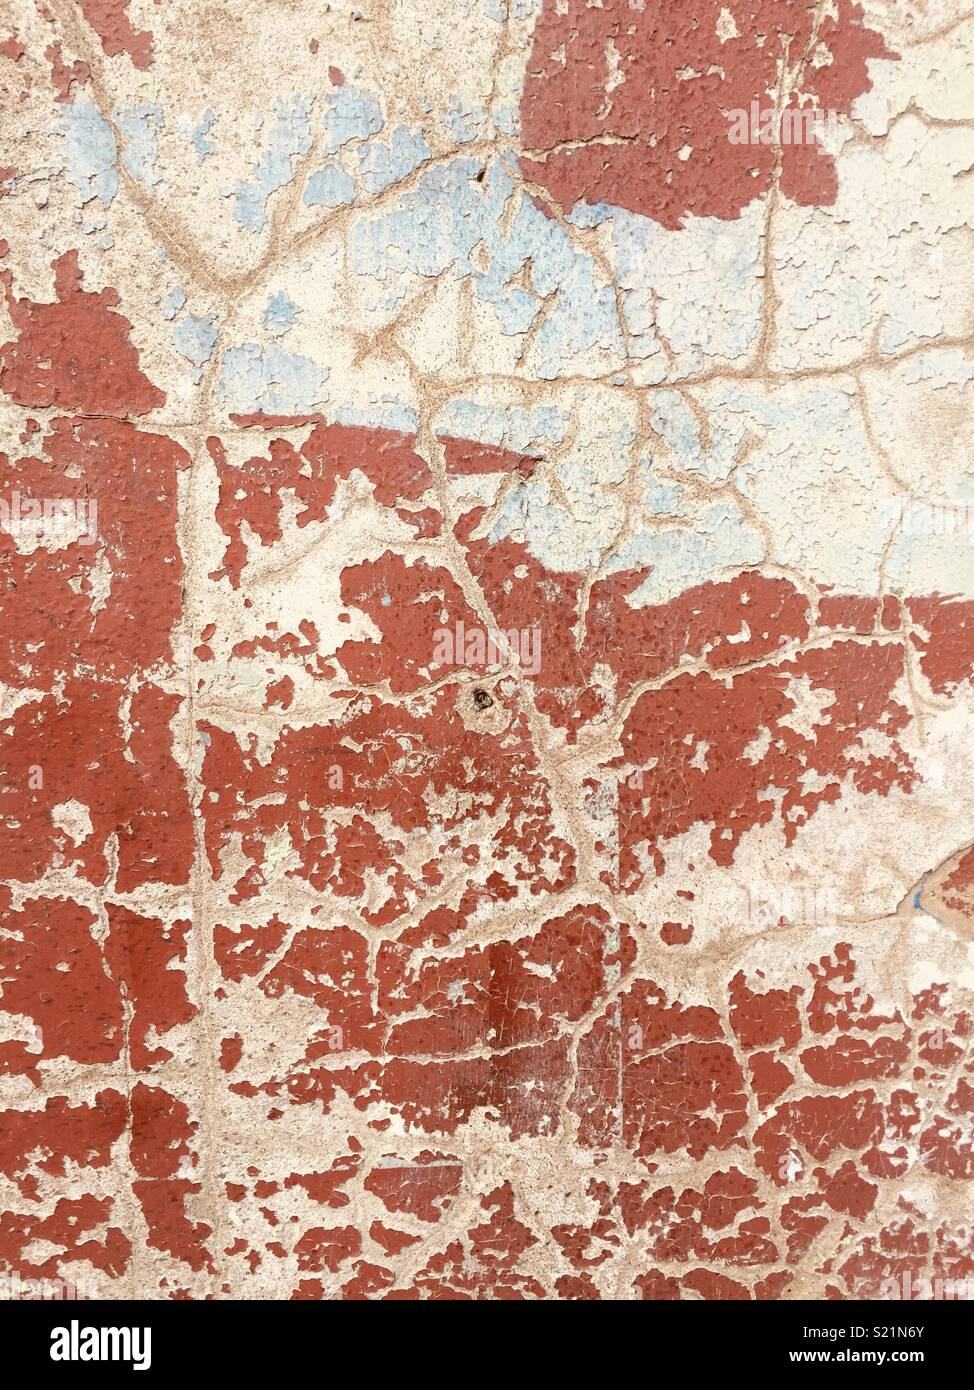 Distressed wall - Stock Image